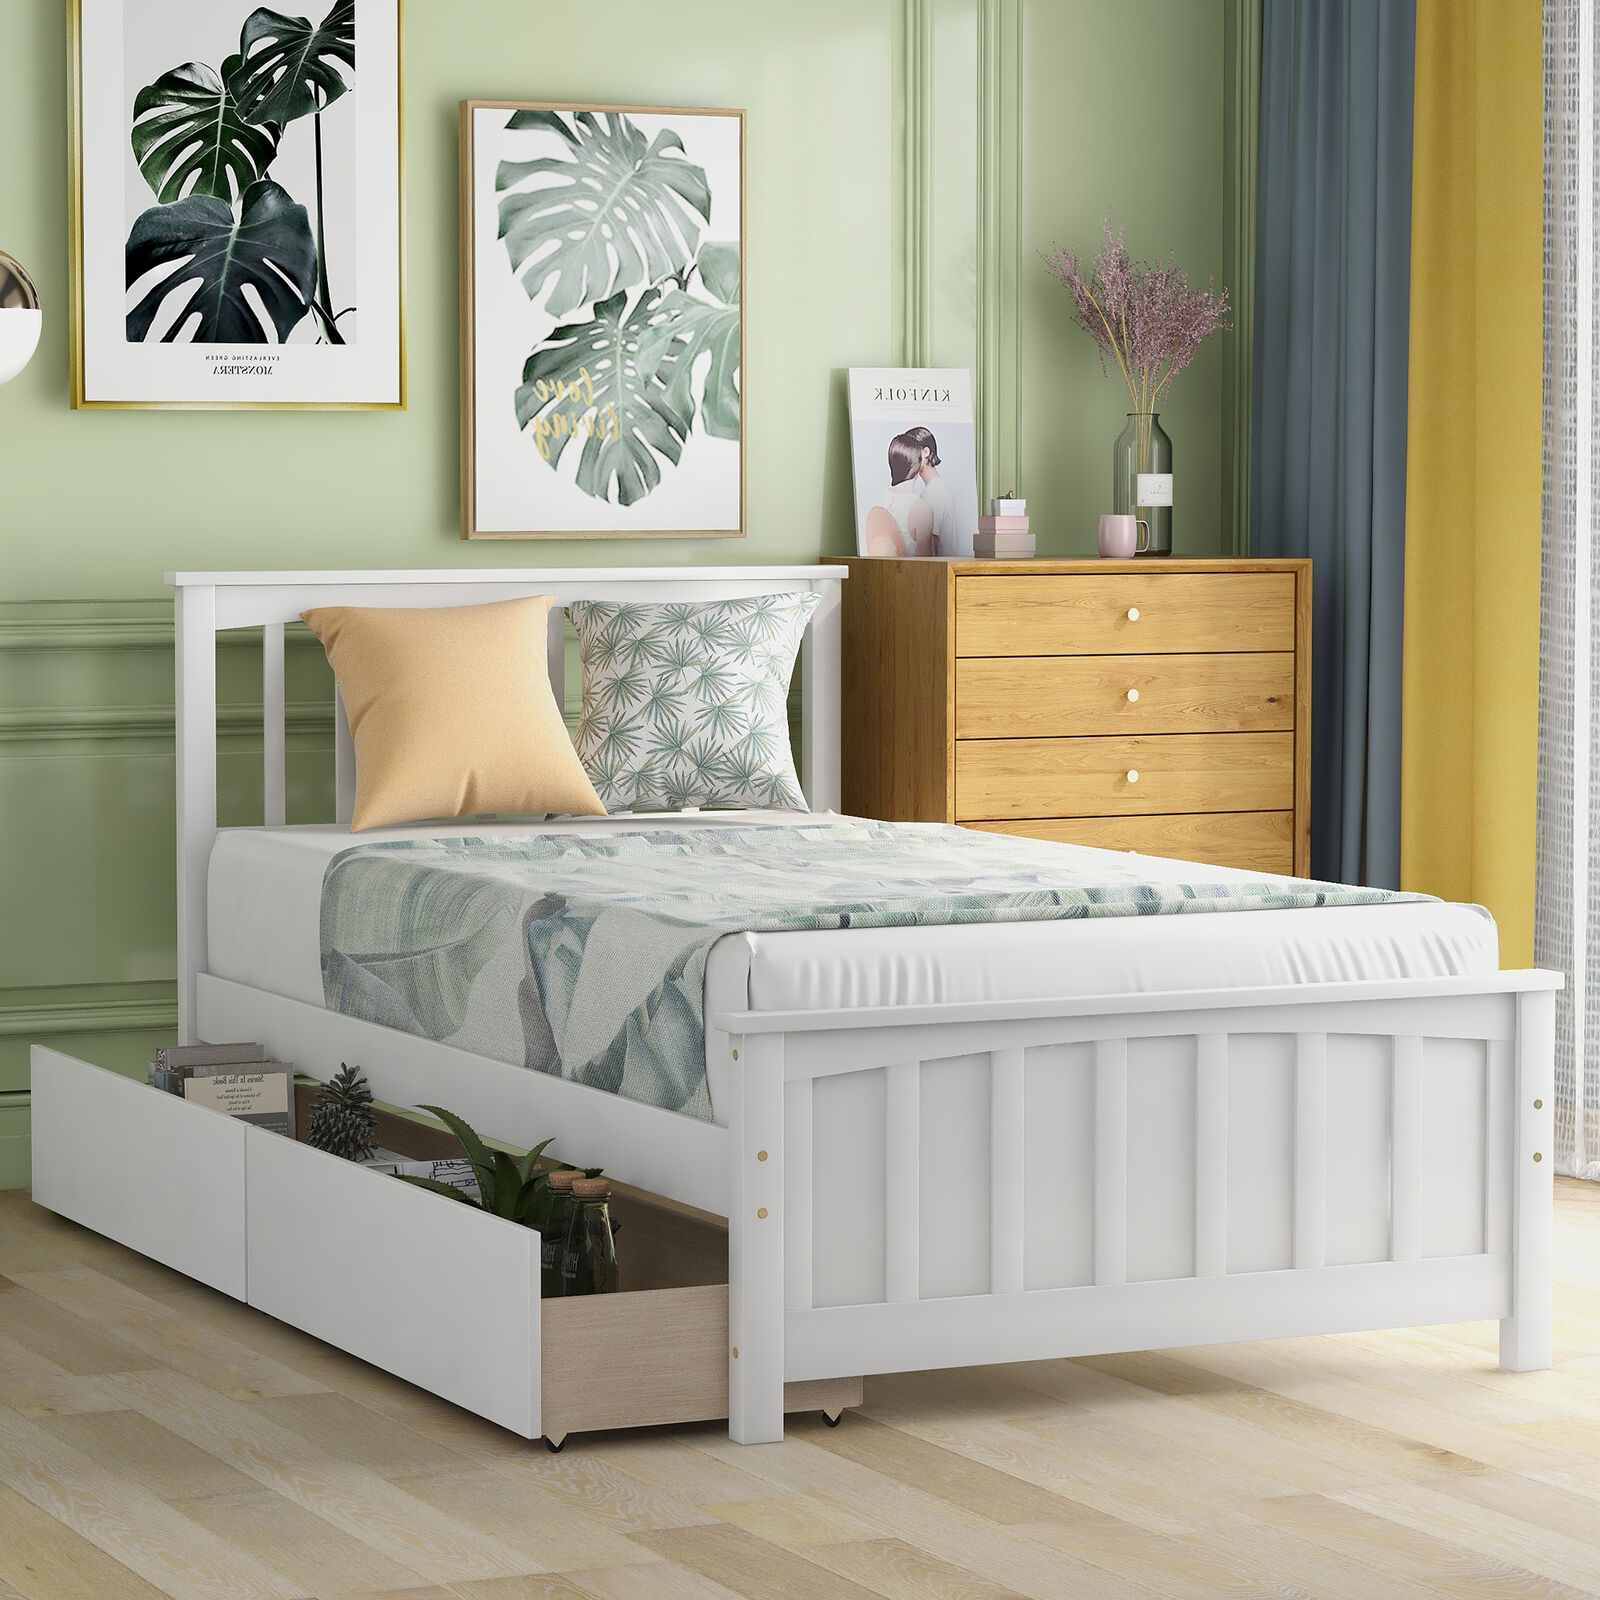 Picture of: Frame Wood Construction Spacious Storage Drawer With Casters Platform Twin Bed For Sale Online Ebay